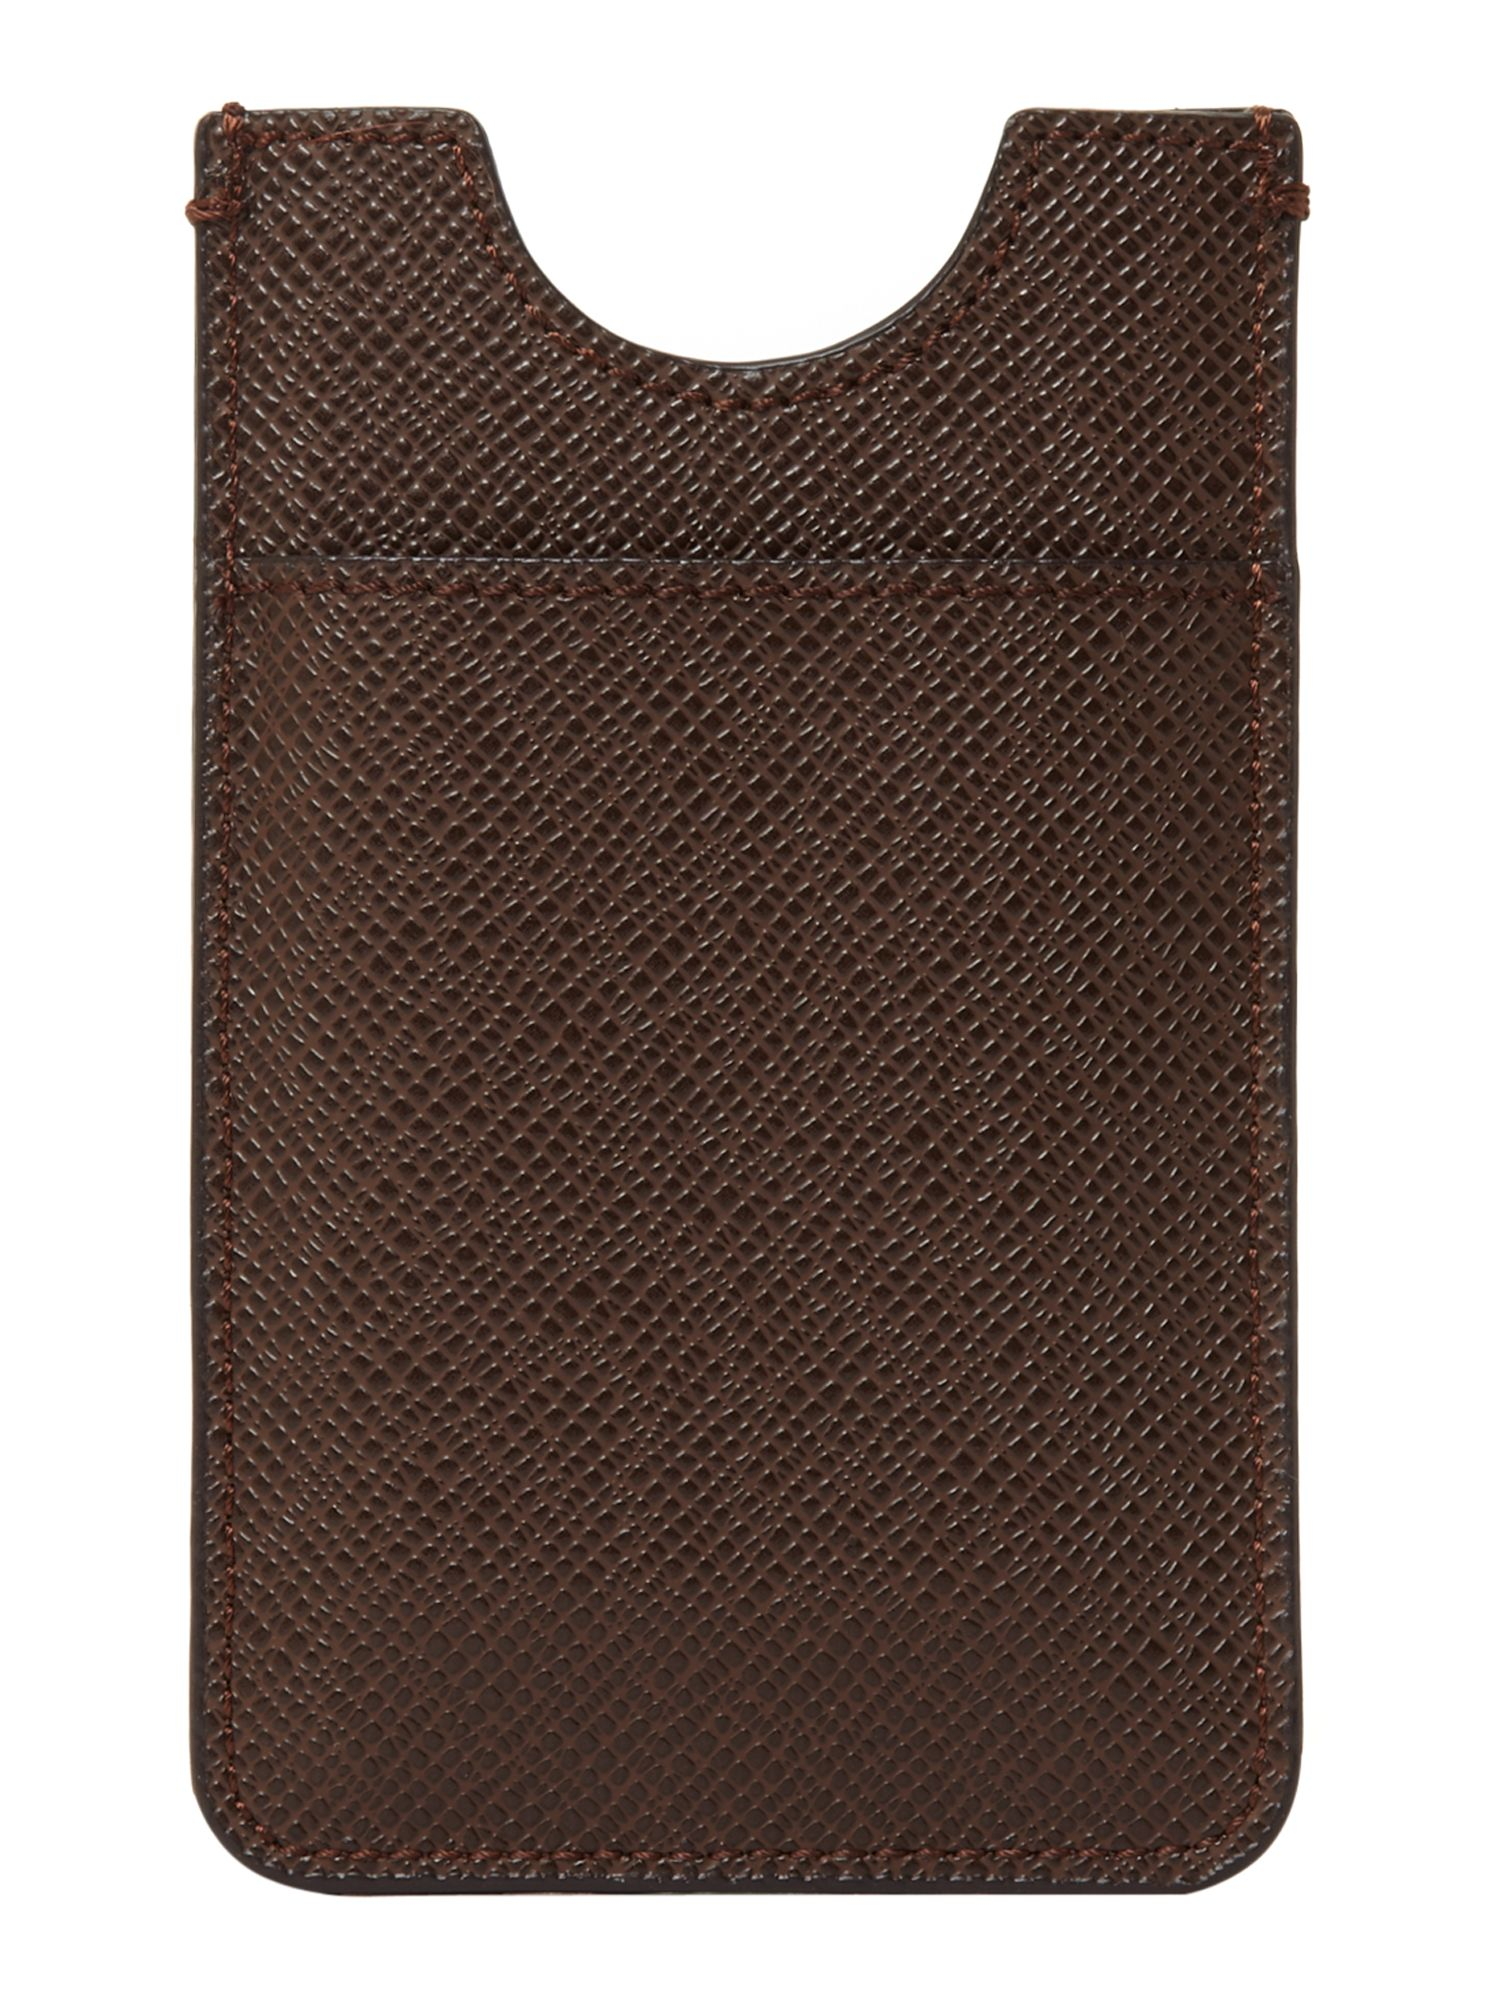 X grain phone case